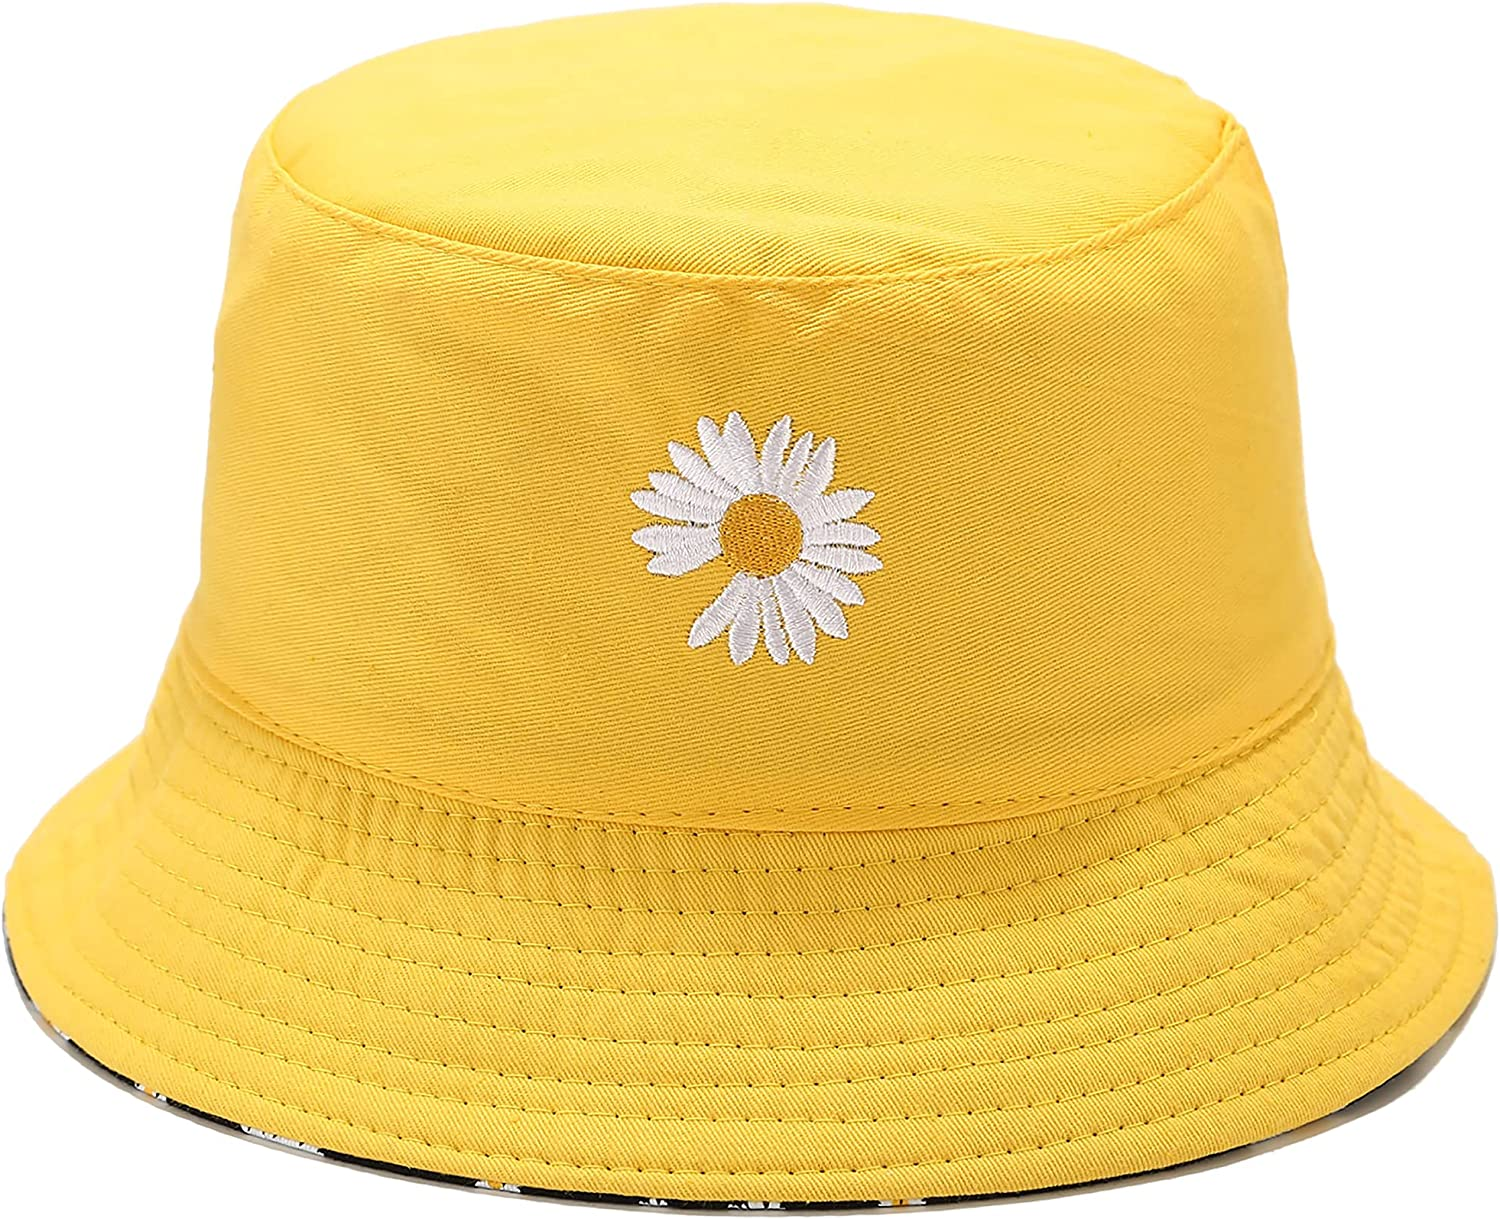 As Max Wholesale 55% OFF Seen On TV Flower Reversible Travel Bucket Summer S Beach Hat